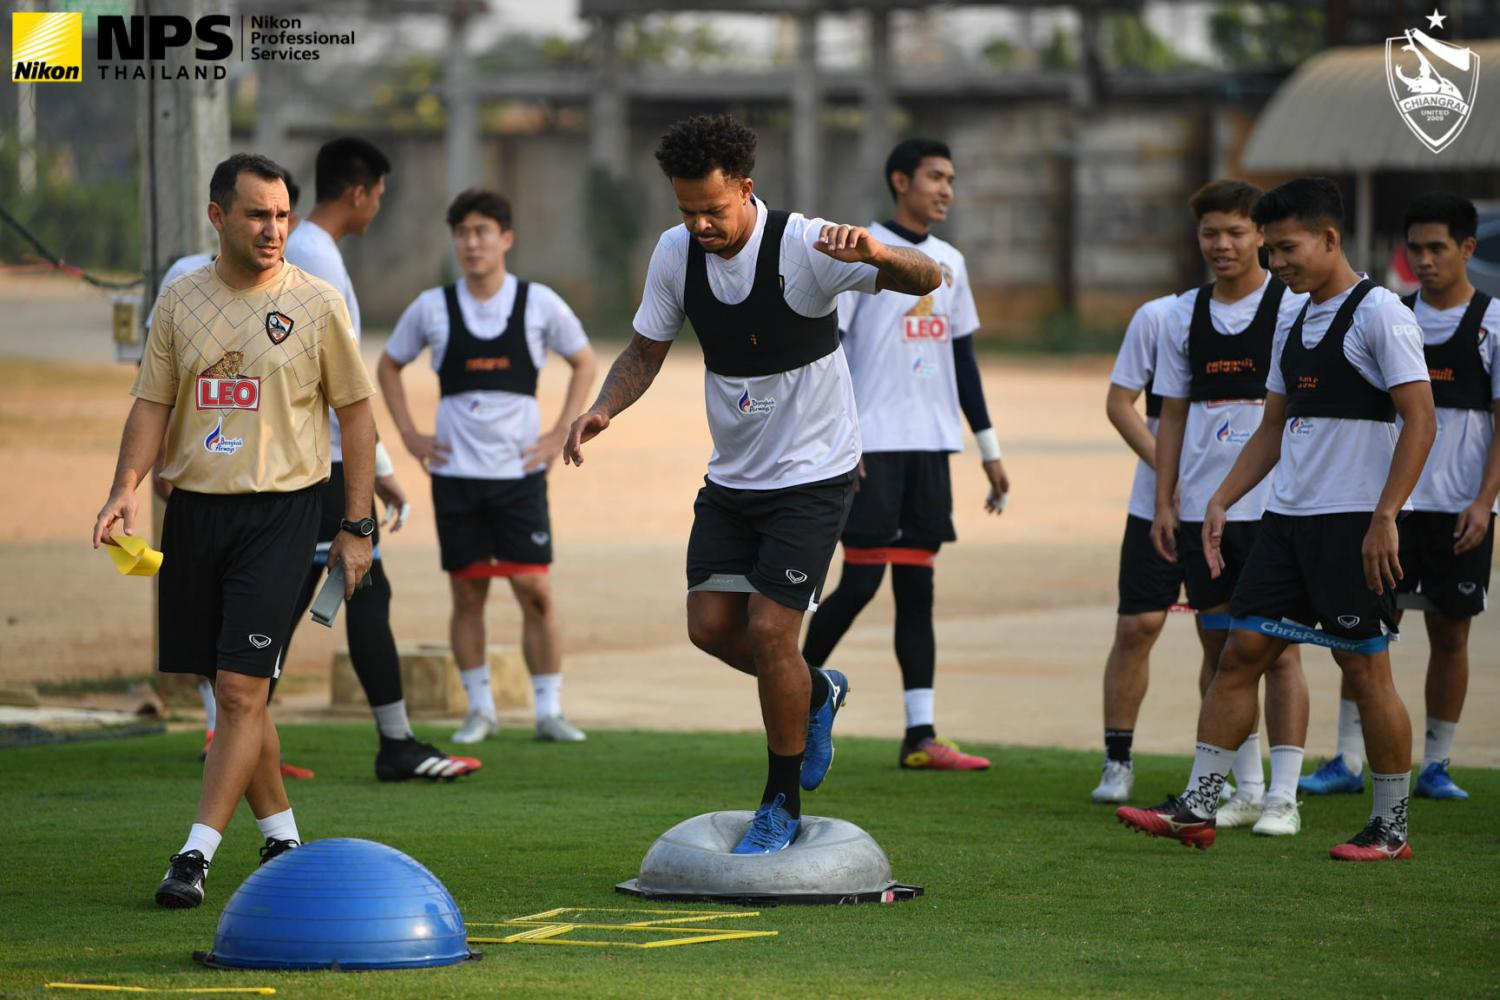 Chiang Rai United's Bill Rosimar, centre, takes part in a training session on Monday.